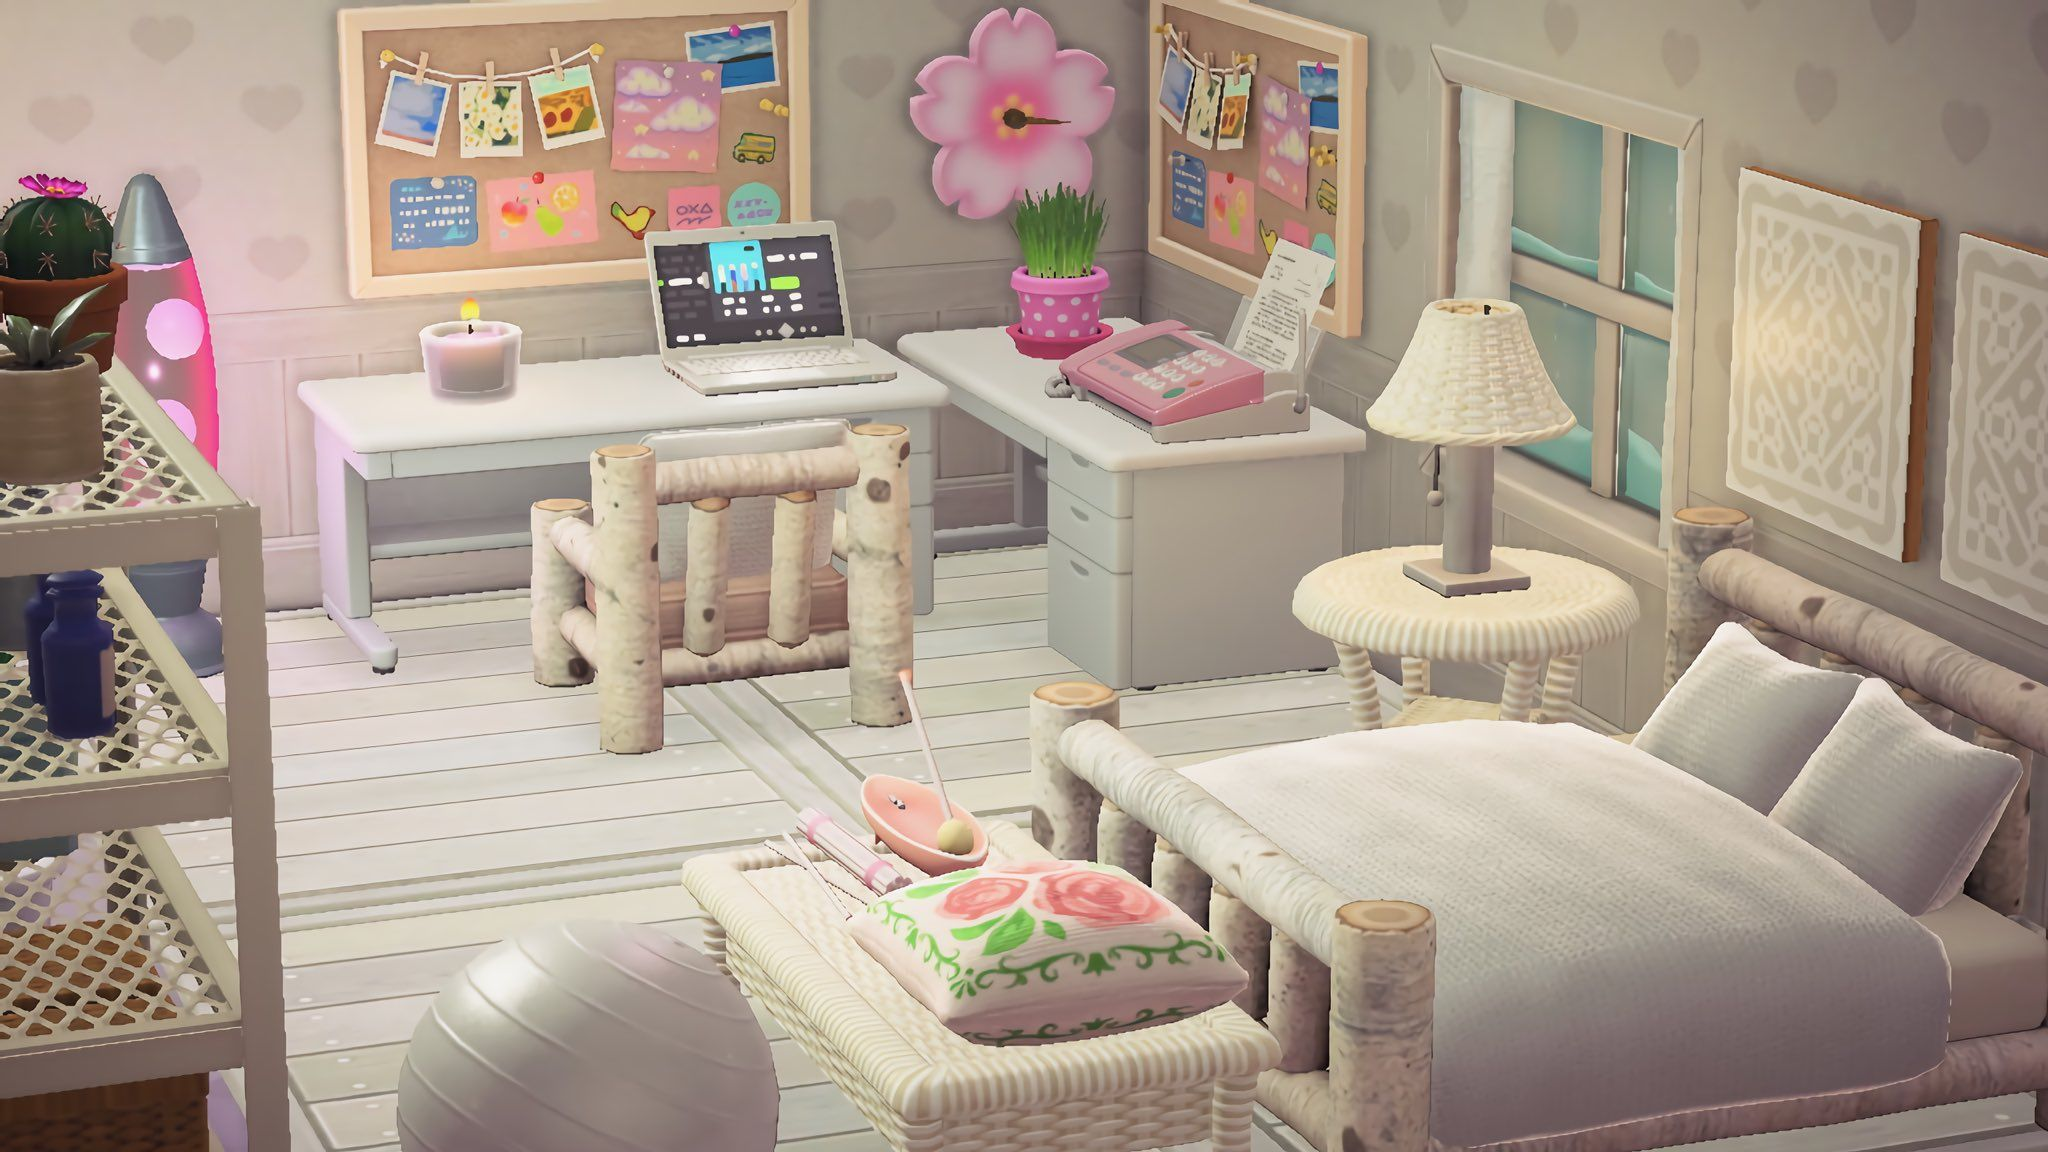 animal crossing new horizons acnh interior in 2020 ... on Animal Crossing Room Ideas New Horizons  id=85858